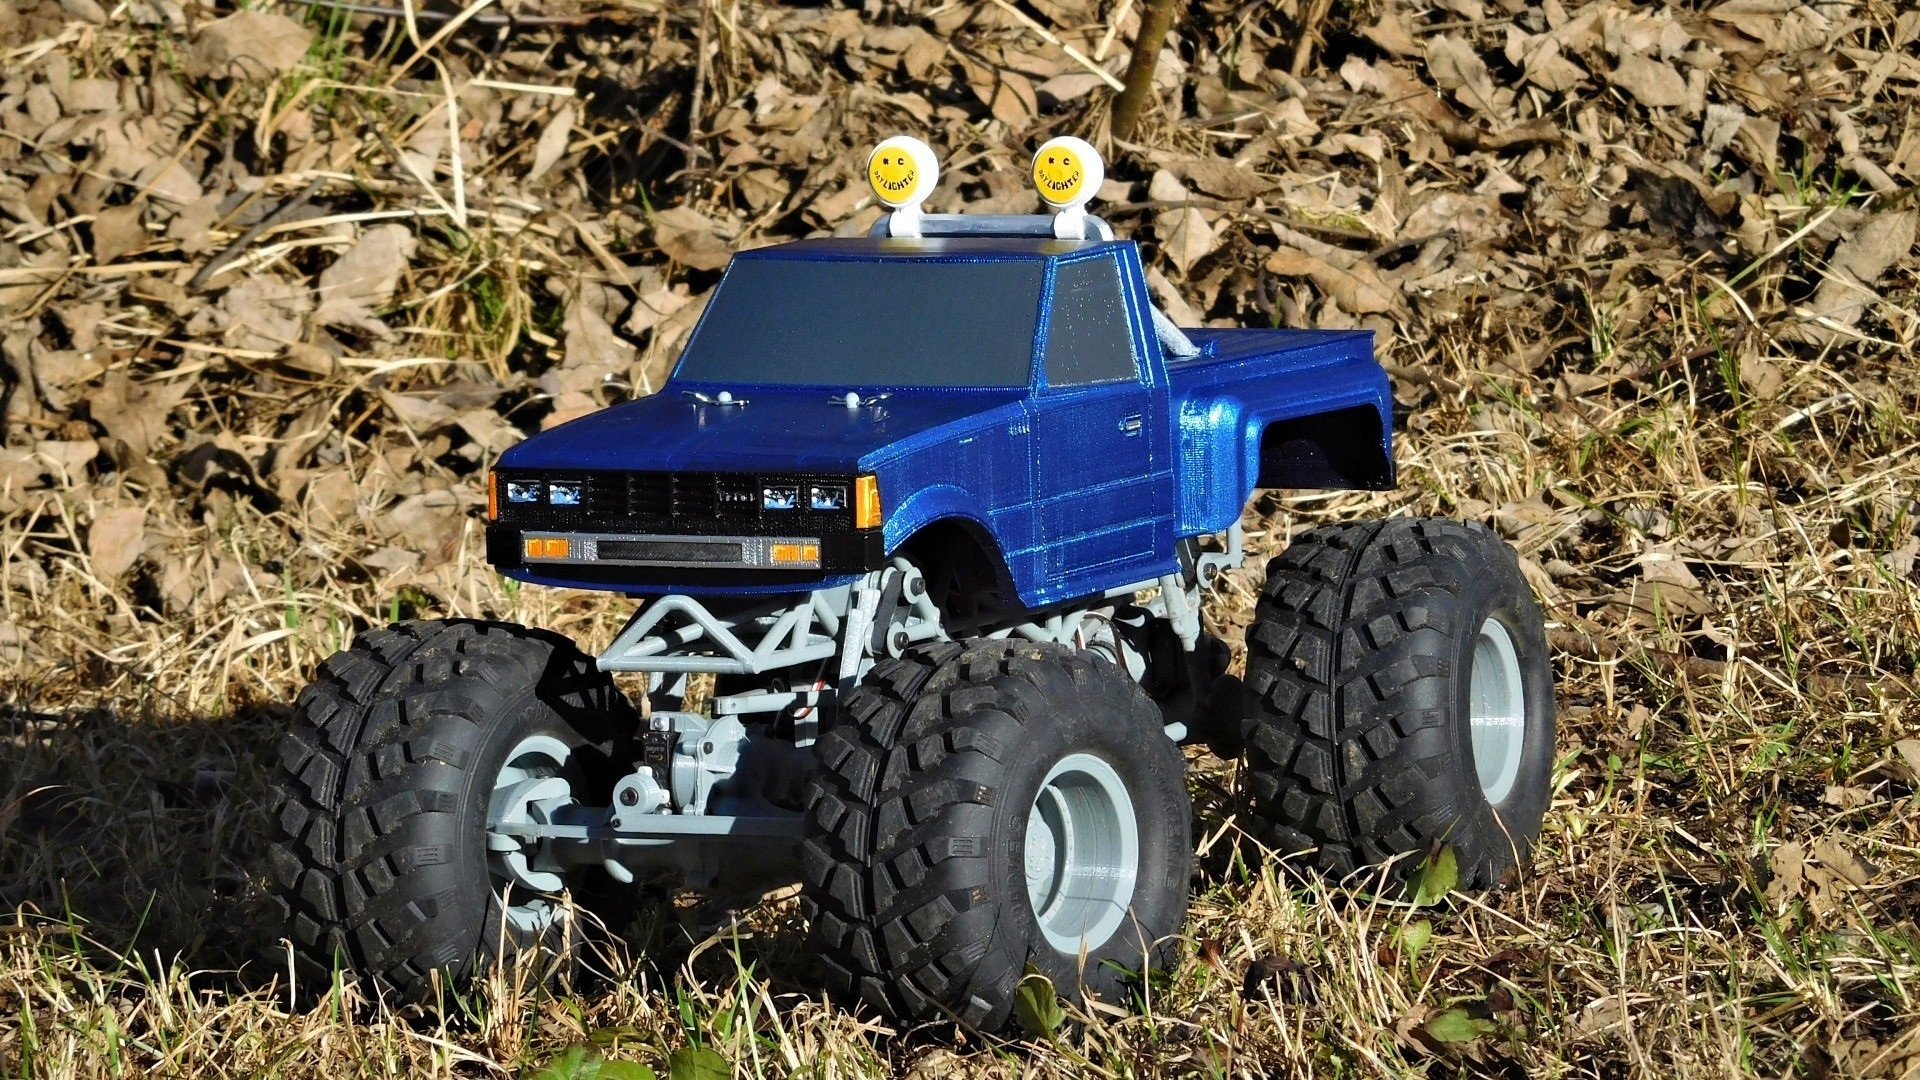 DSCN1244.JPG Download free STL file Fully printable Monster Truck • 3D printer design, tahustvedt